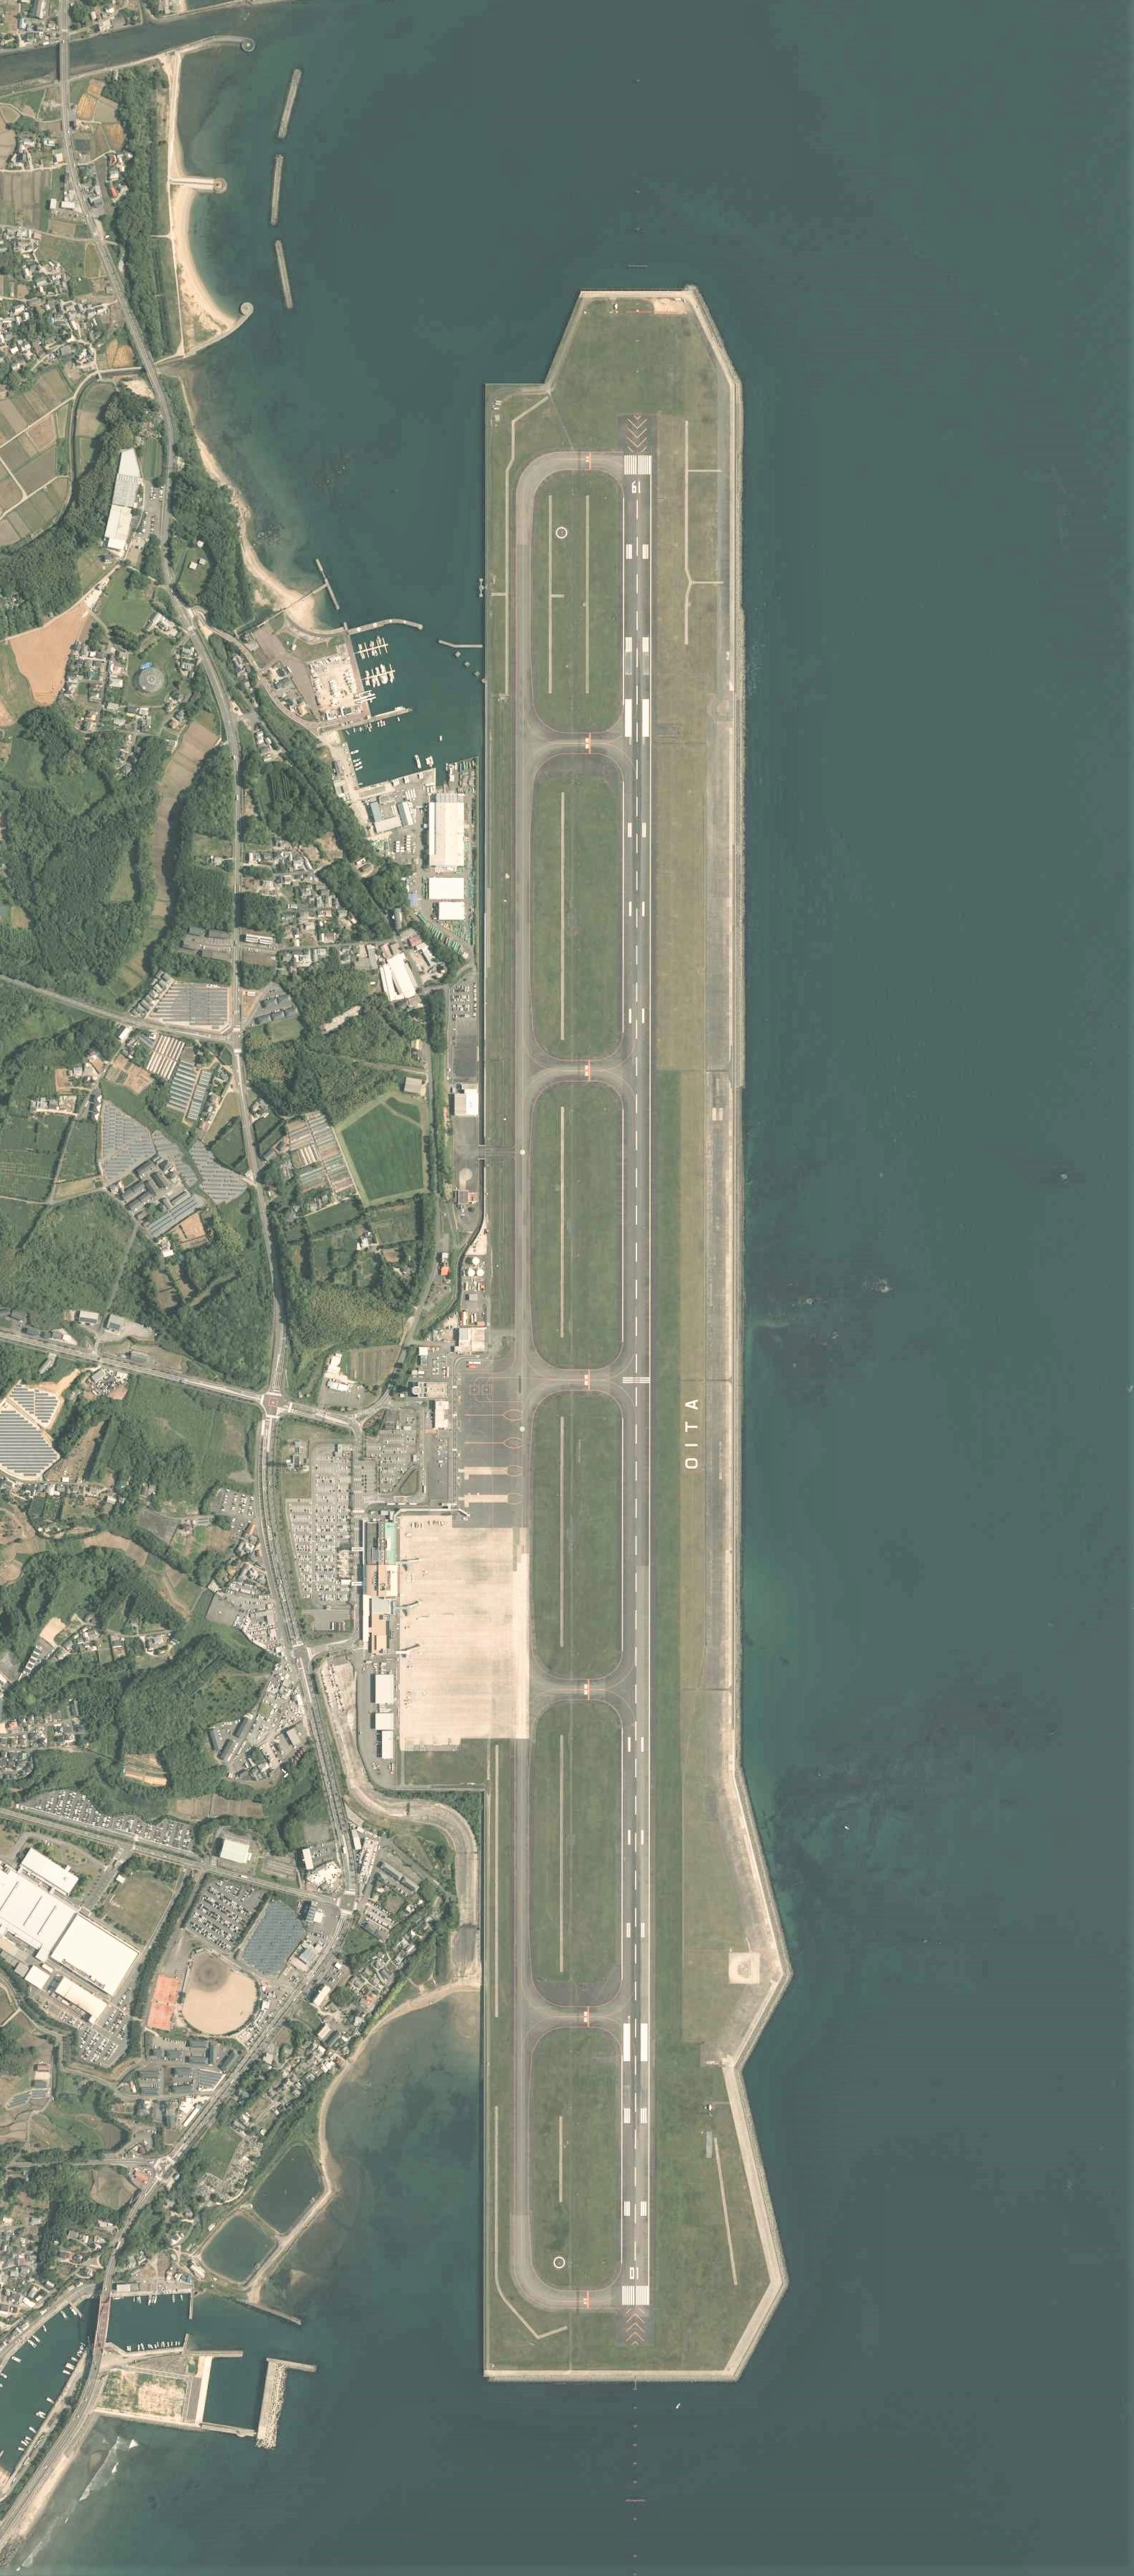 https://upload.wikimedia.org/wikipedia/commons/3/39/Oita_Airport_Aerial_photograph.2015.jpg